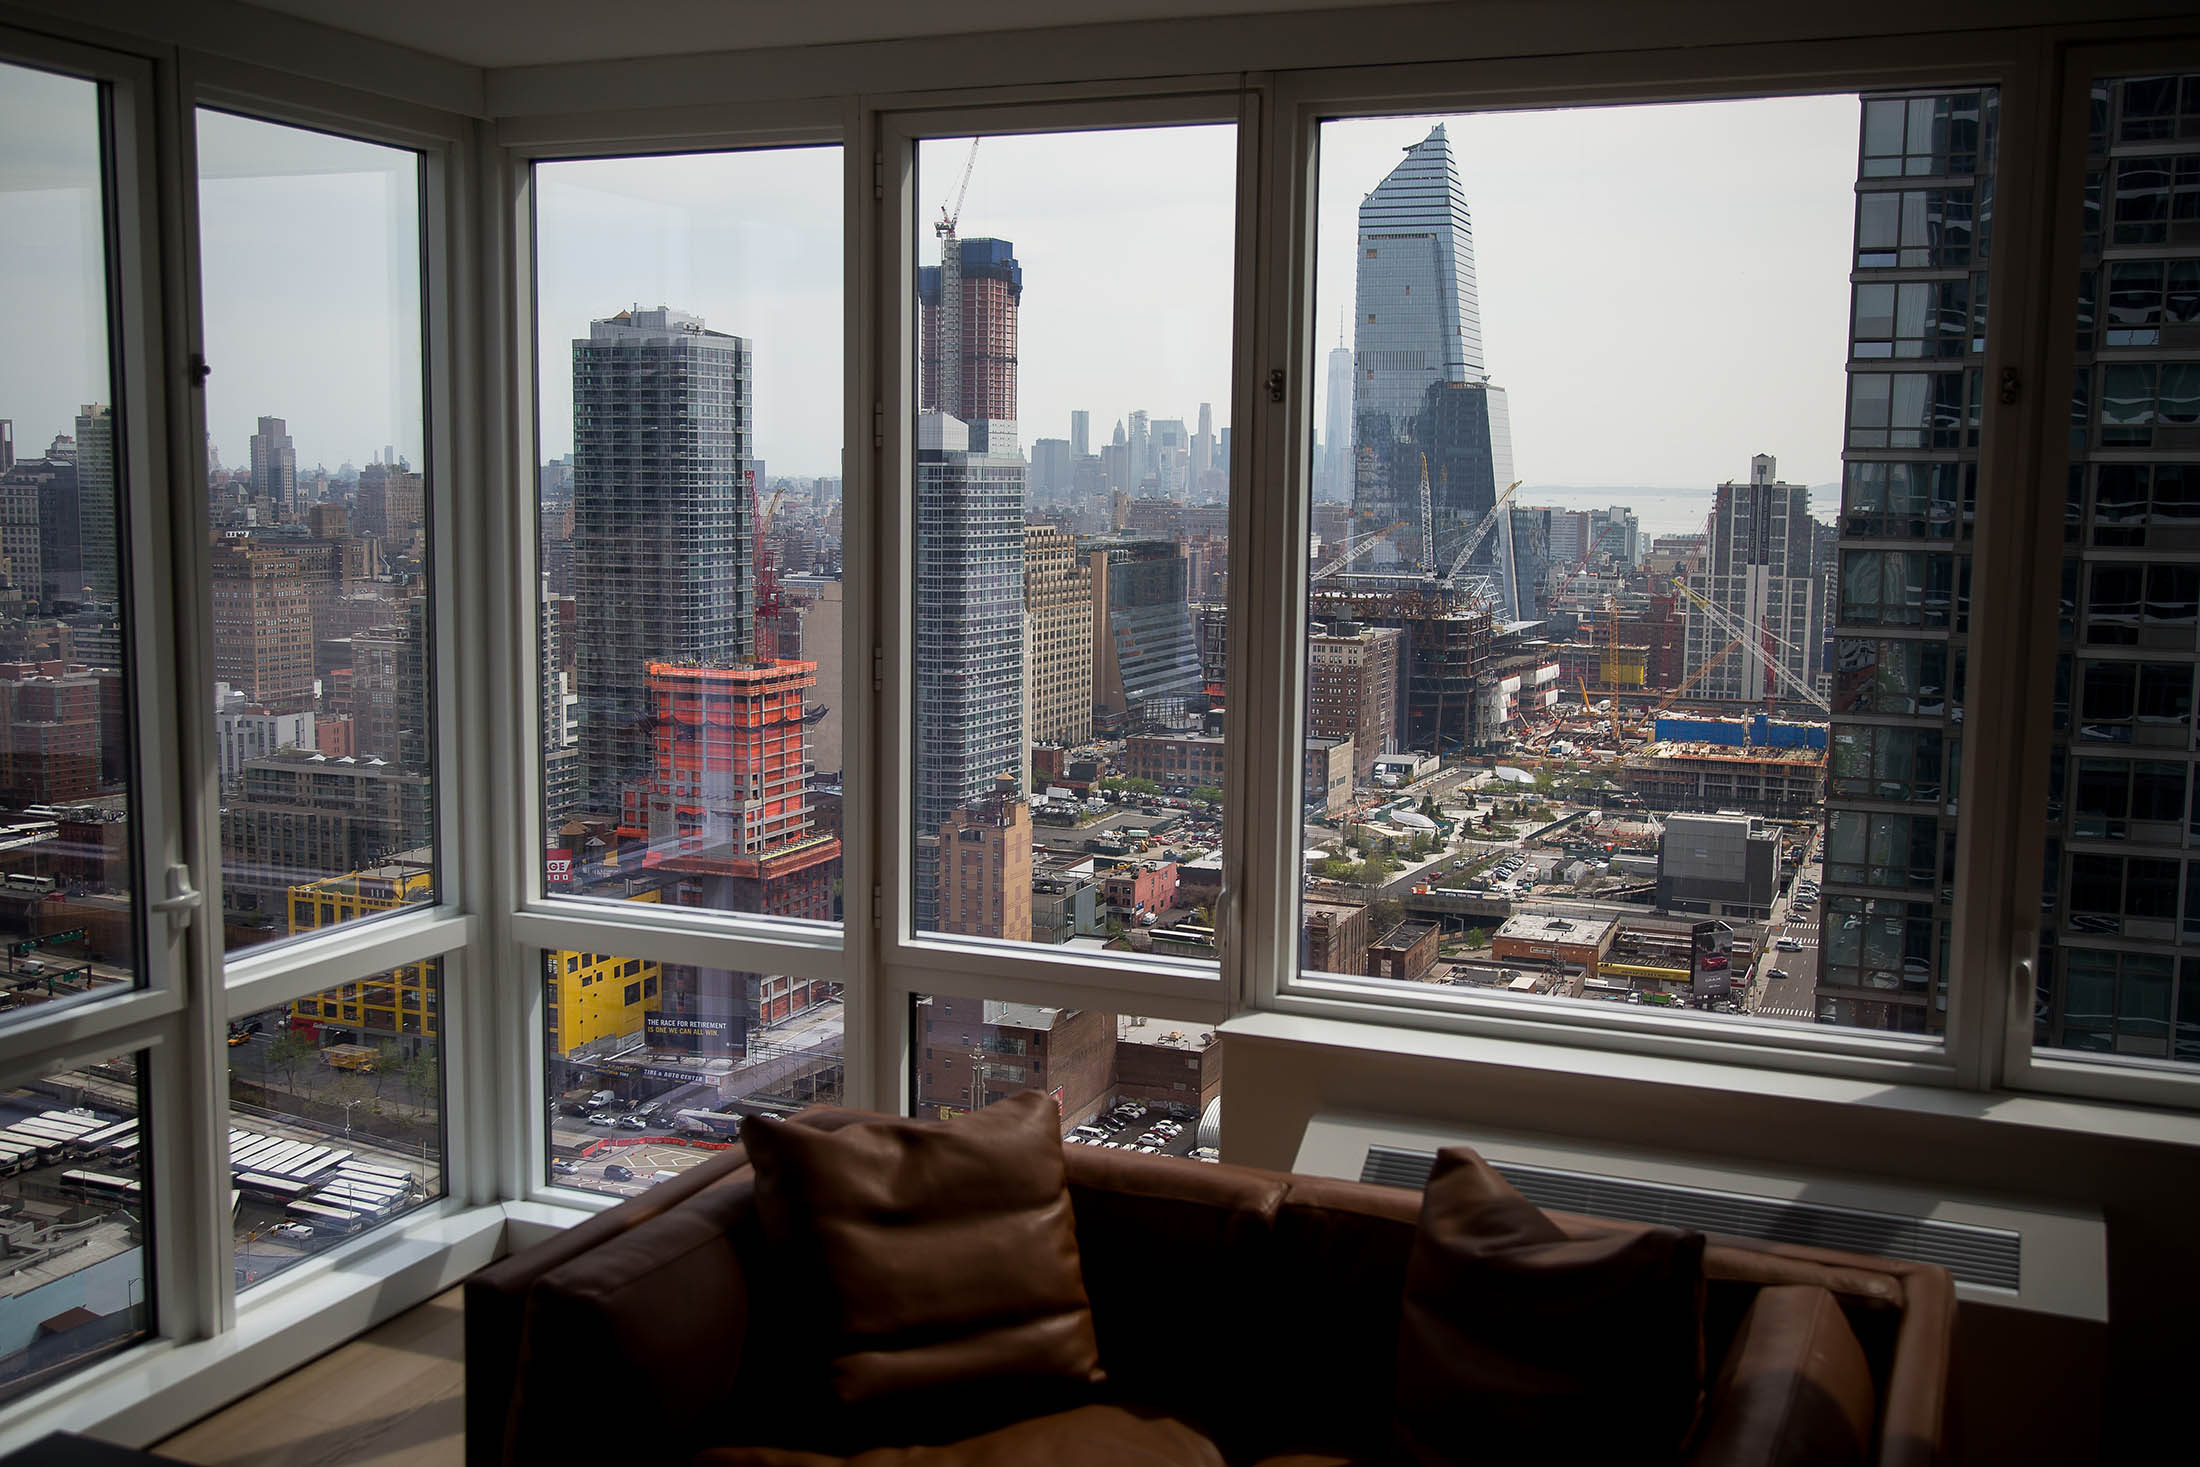 Manhattan Apartment Sales Plunge 20% - Bloomberg